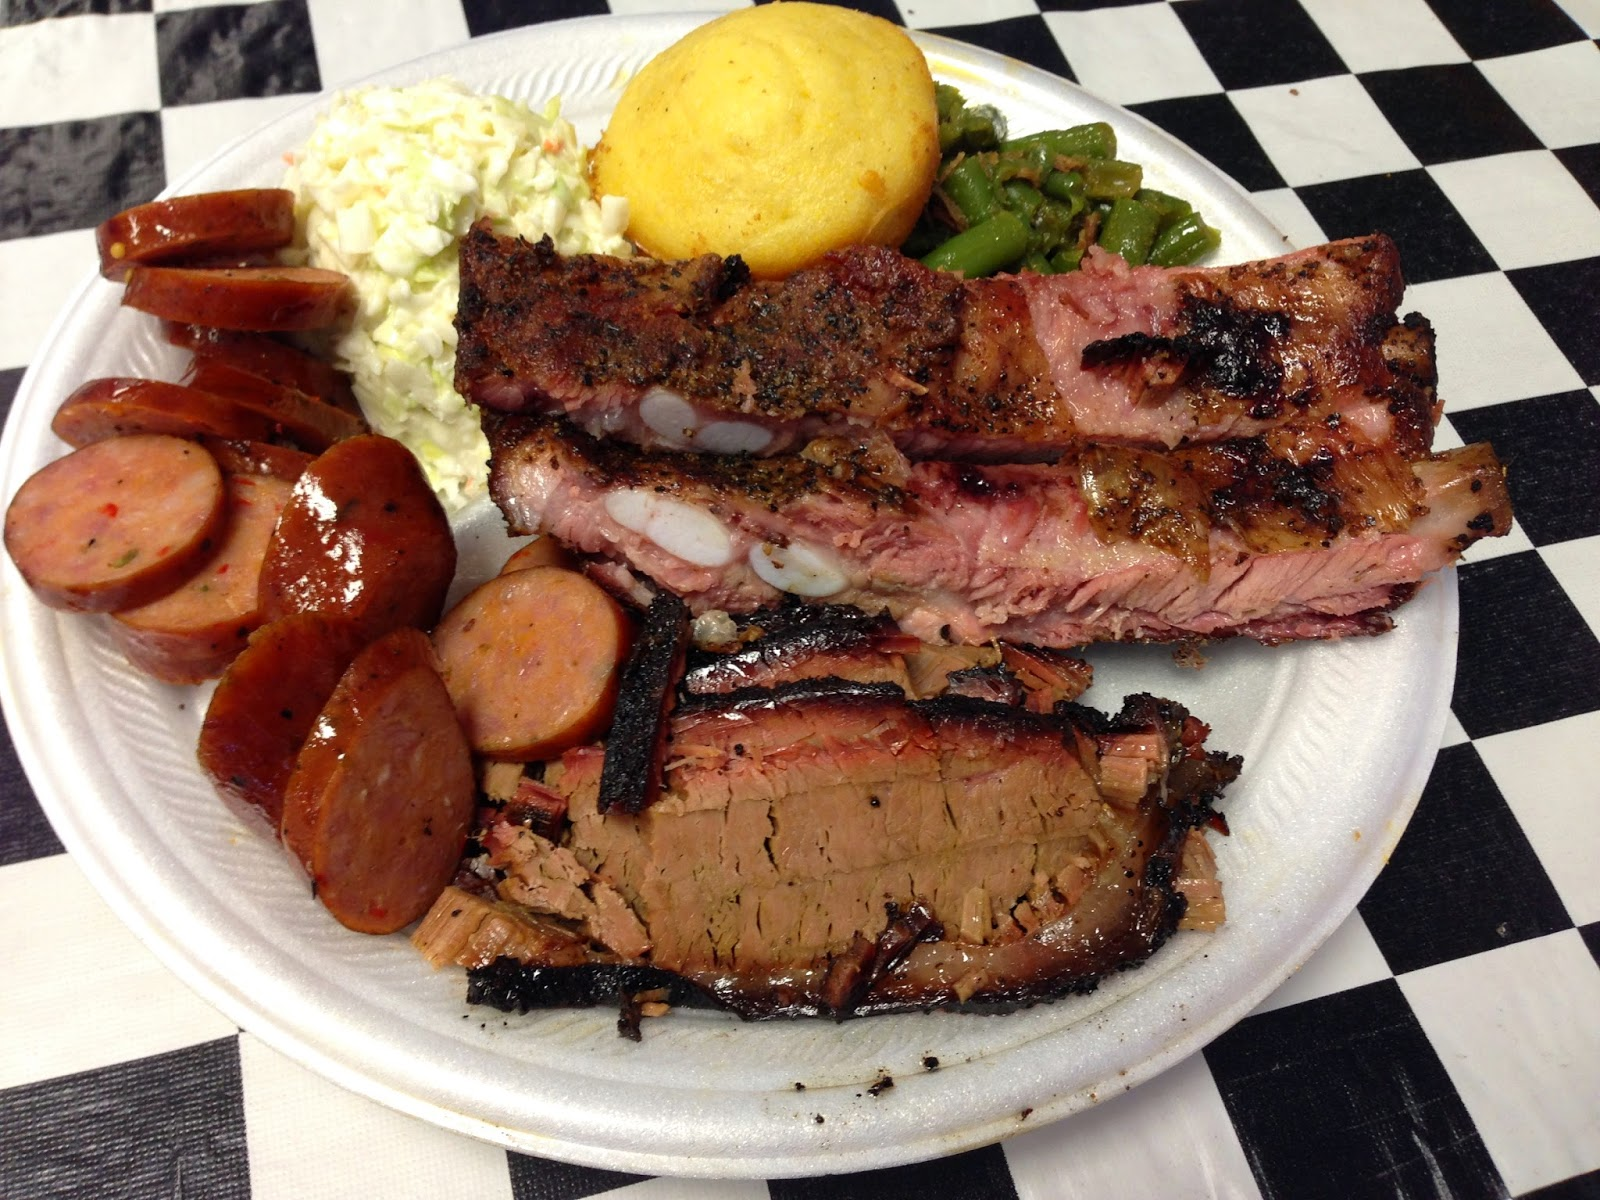 A good lookin' three meat plate at Petty's BBQ